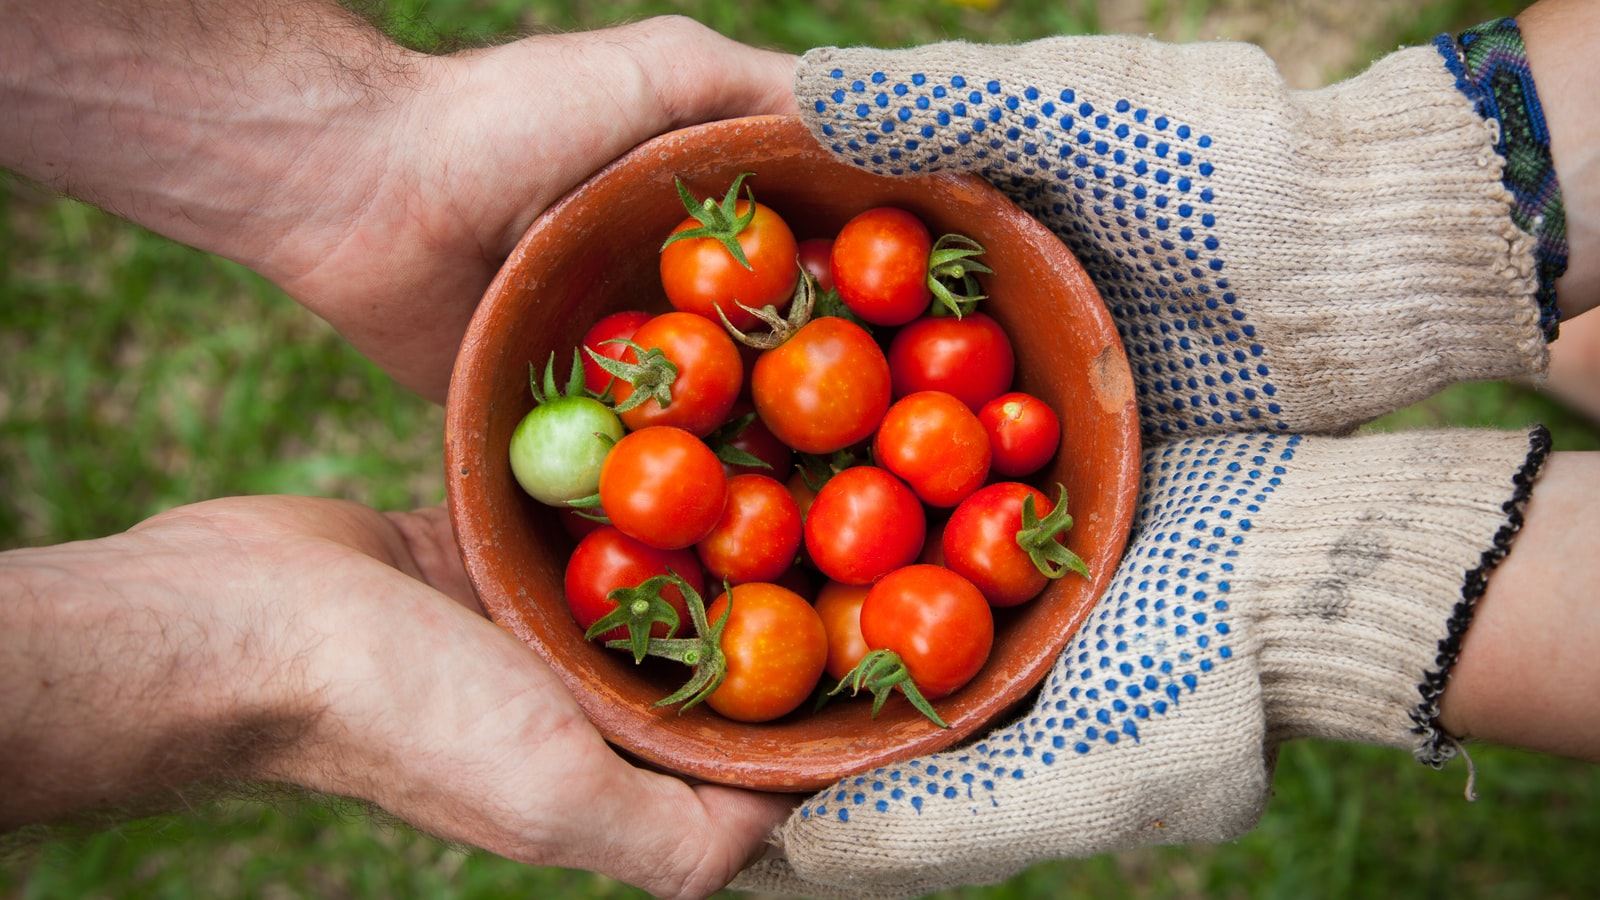 Sharing a bowl of tomatoes